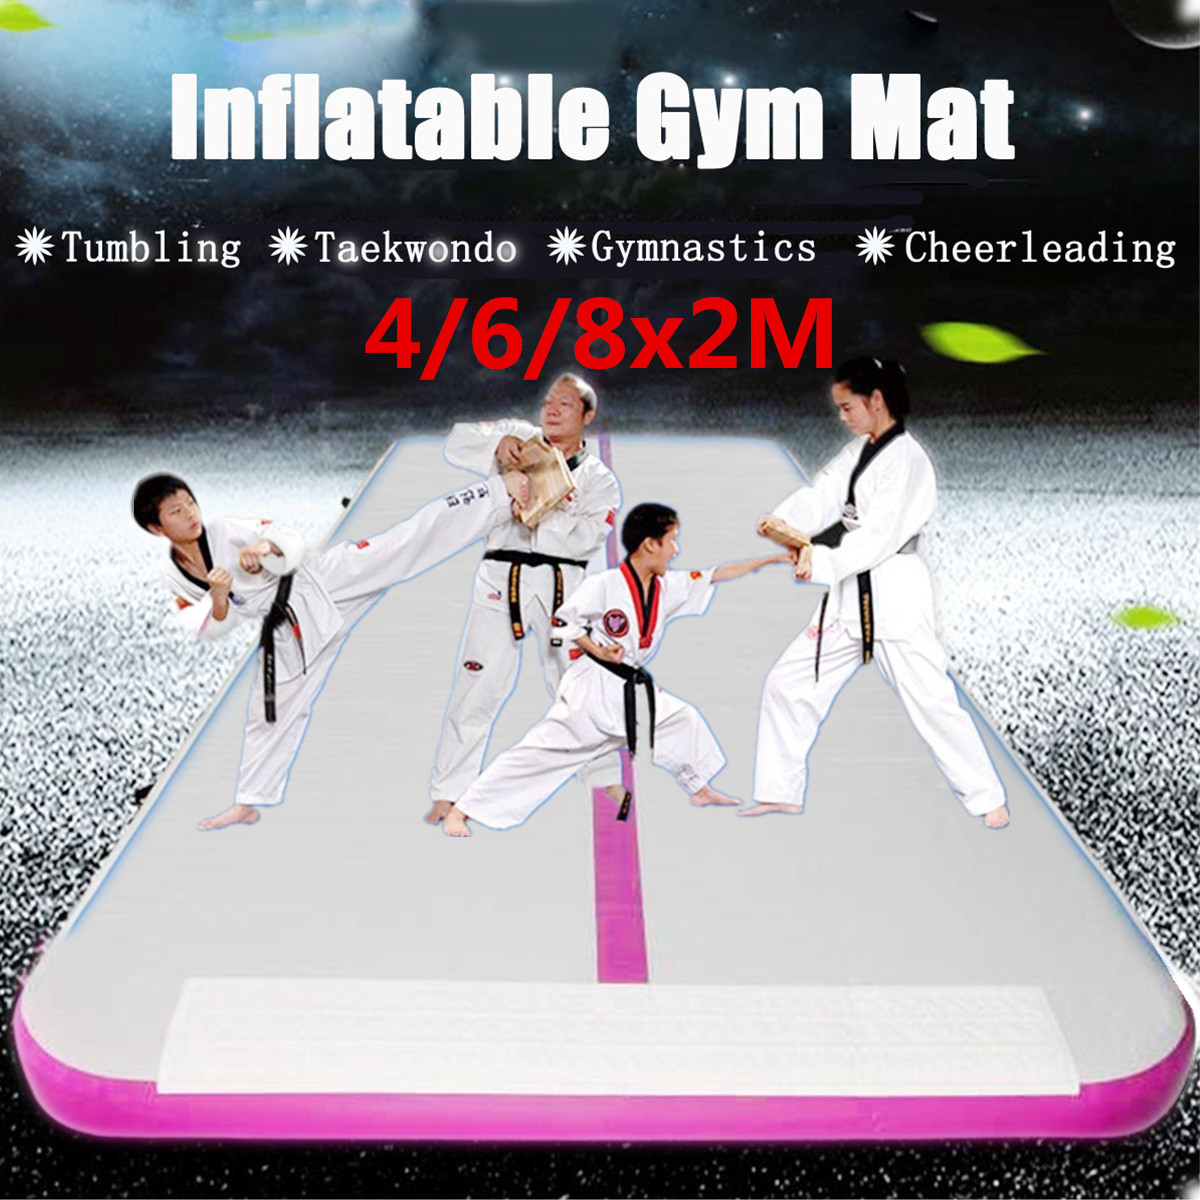 13-26ft PVC Inflatable Gym Mat Air Tumbling Track Gymnastics Cheerleading +Pump